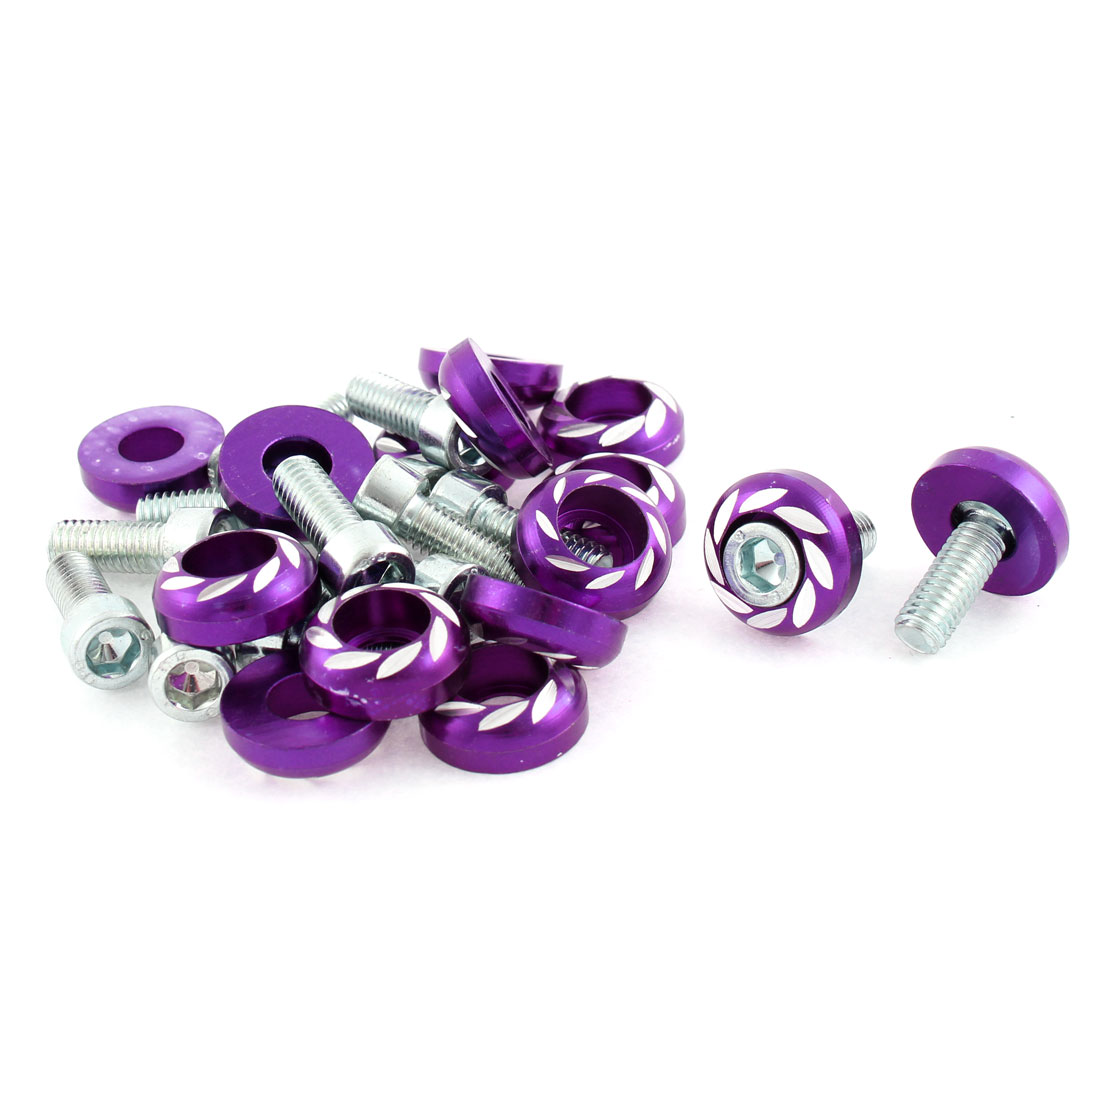 15 Pcs M6 Thread Diameter Purple Round Car License Plate Bolt Screw